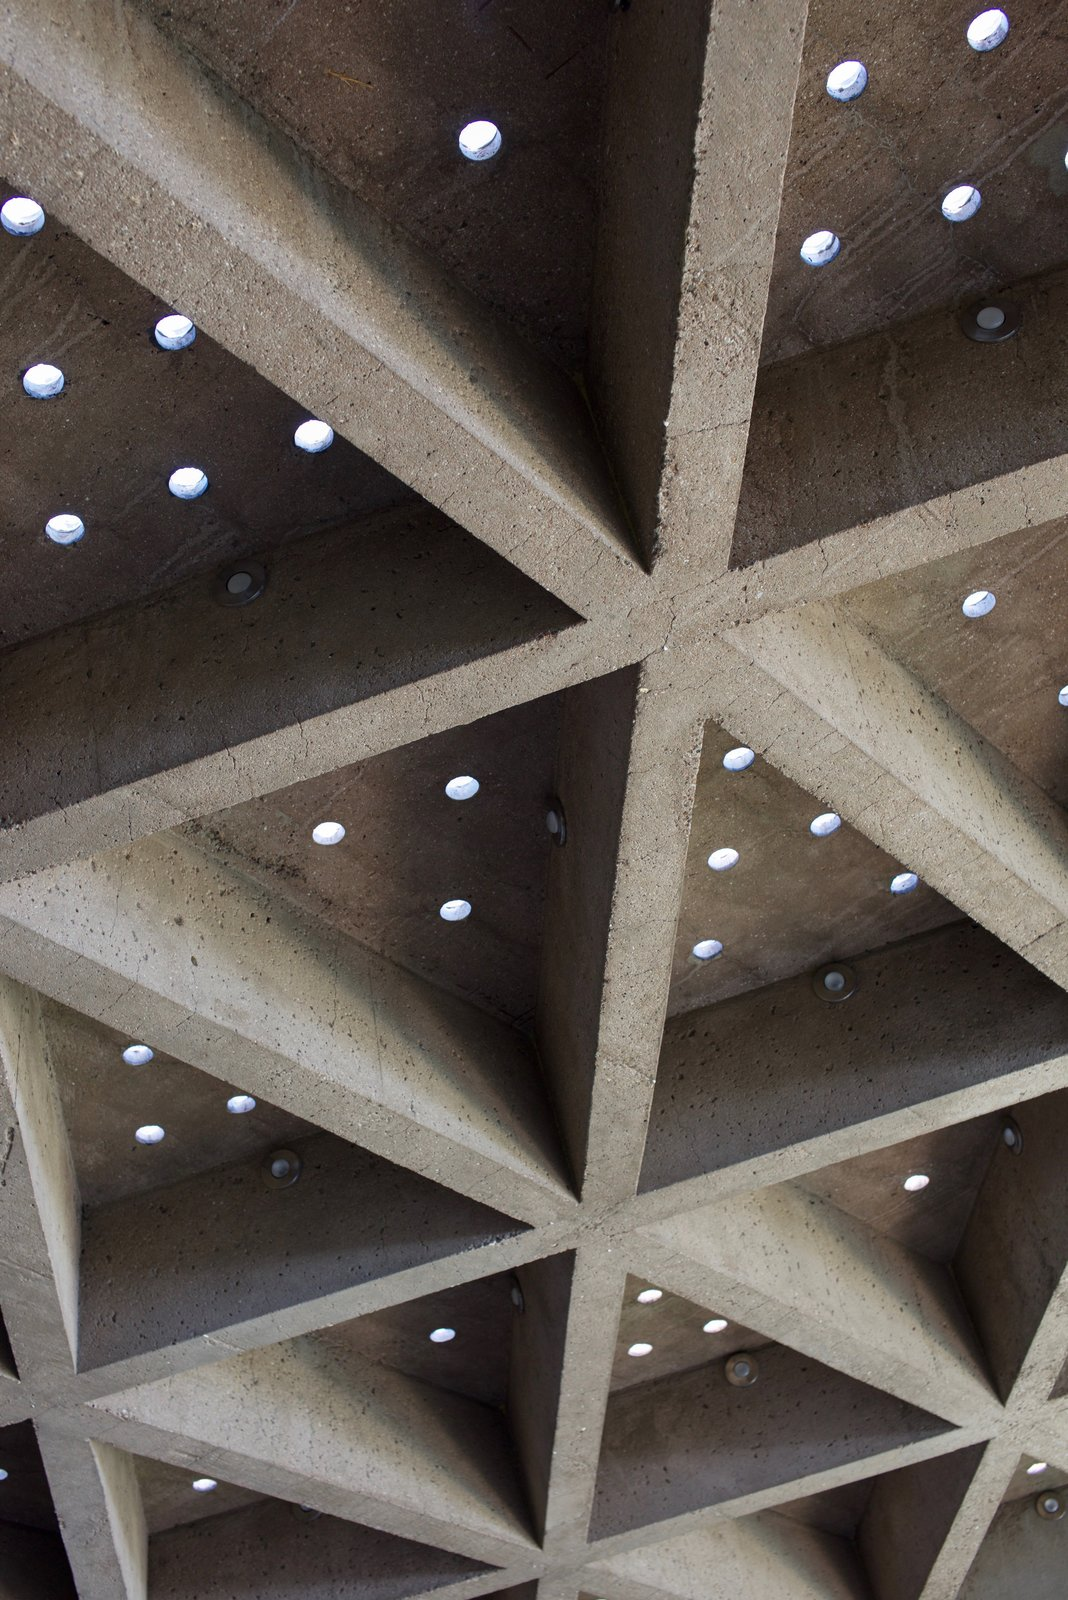 The ceiling is covered with sandblasted concrete that still has the original miniature circular skylights. Behind the Scenes at John Lautner's Sheats-Goldstein Residence by Paige Alexus